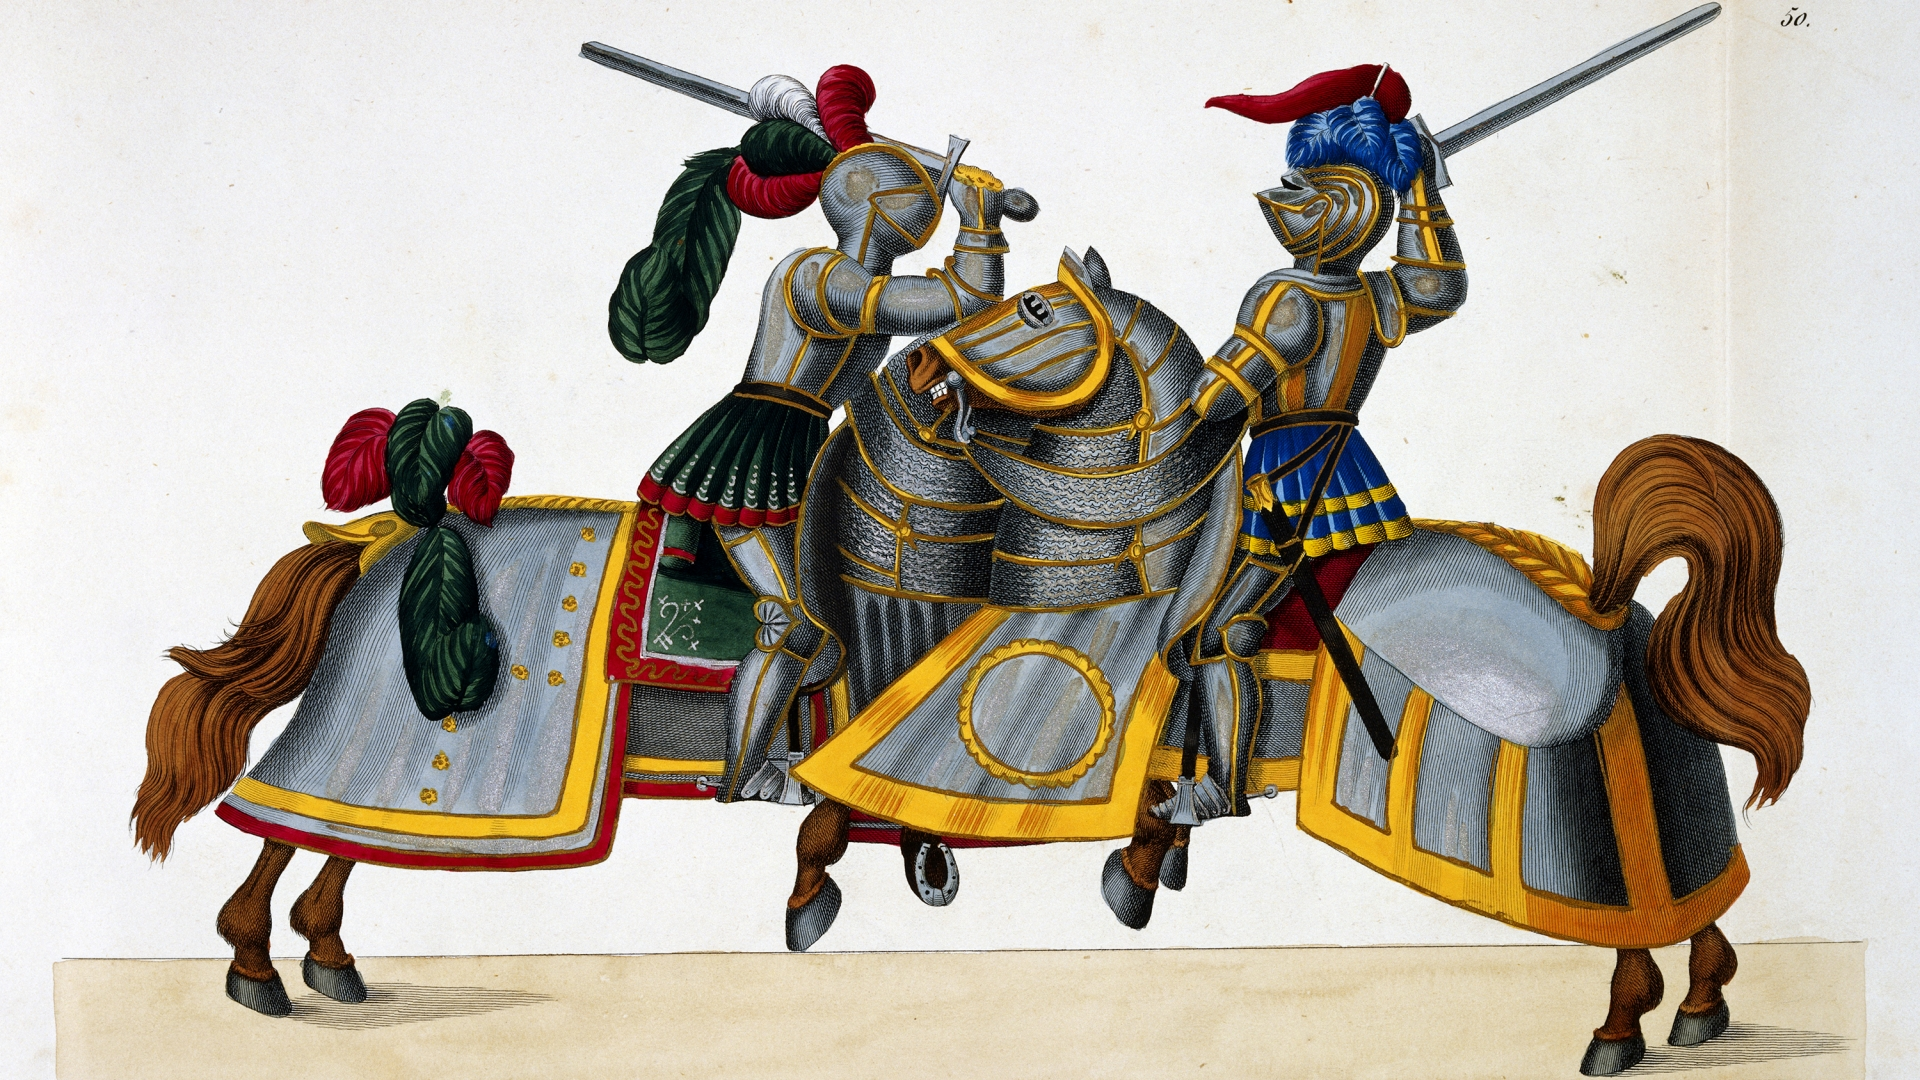 An illustration of Knights from A History of the Development and Customs of Chivalry, by Dr. Franz Kottenkamp, 1842. (Credit: Historical Picture Archive/Corbis/Getty Images)